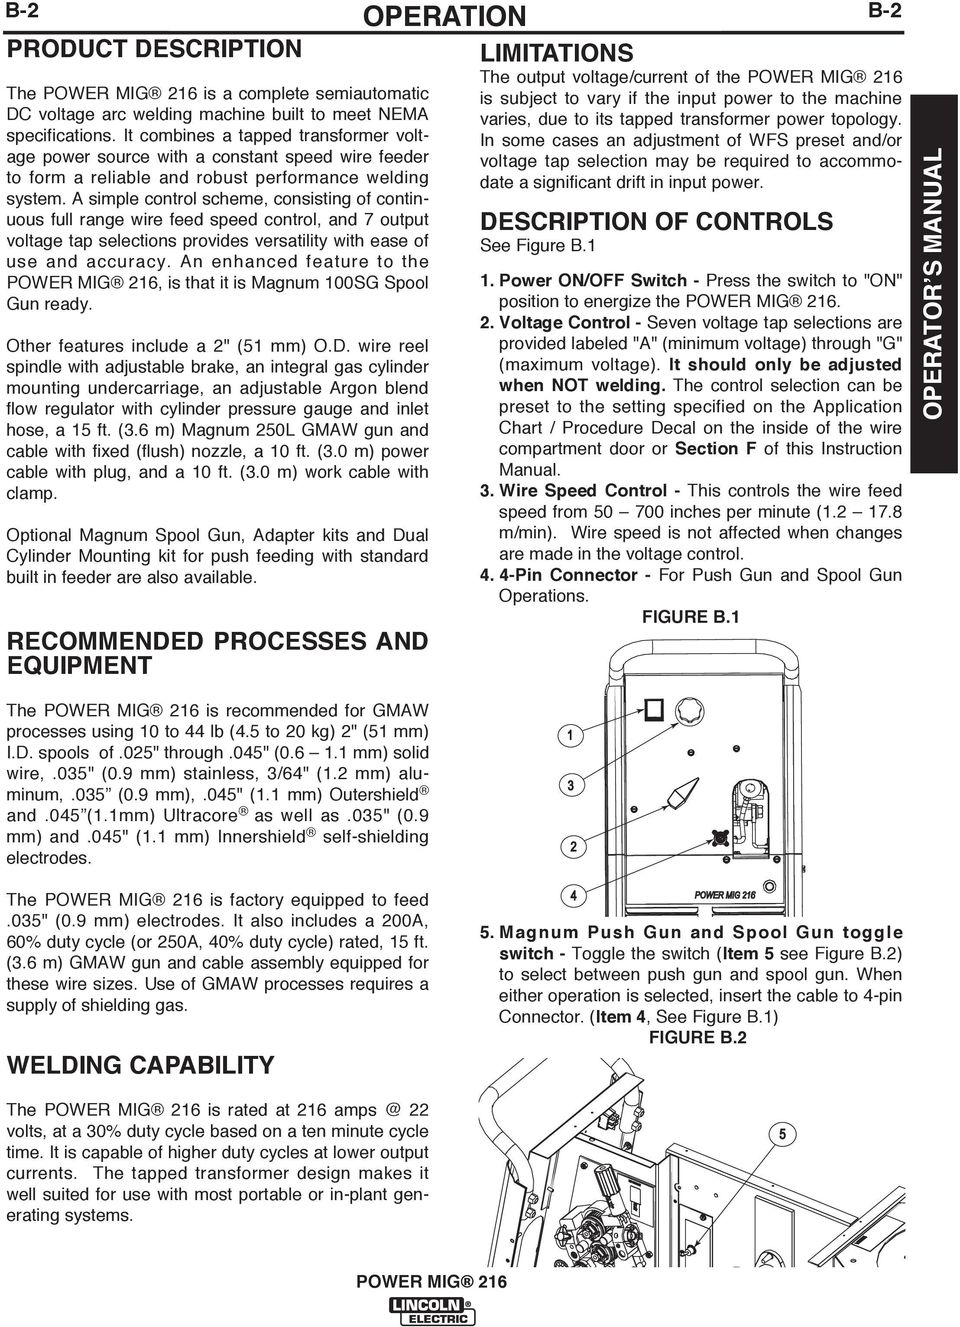 Power Mig 216 For Use With Machine Code Numbers Lincoln 100sg Wiring Diagram A Simple Control Scheme Consisting Of Continuous Full Range Wire Feed Speed And